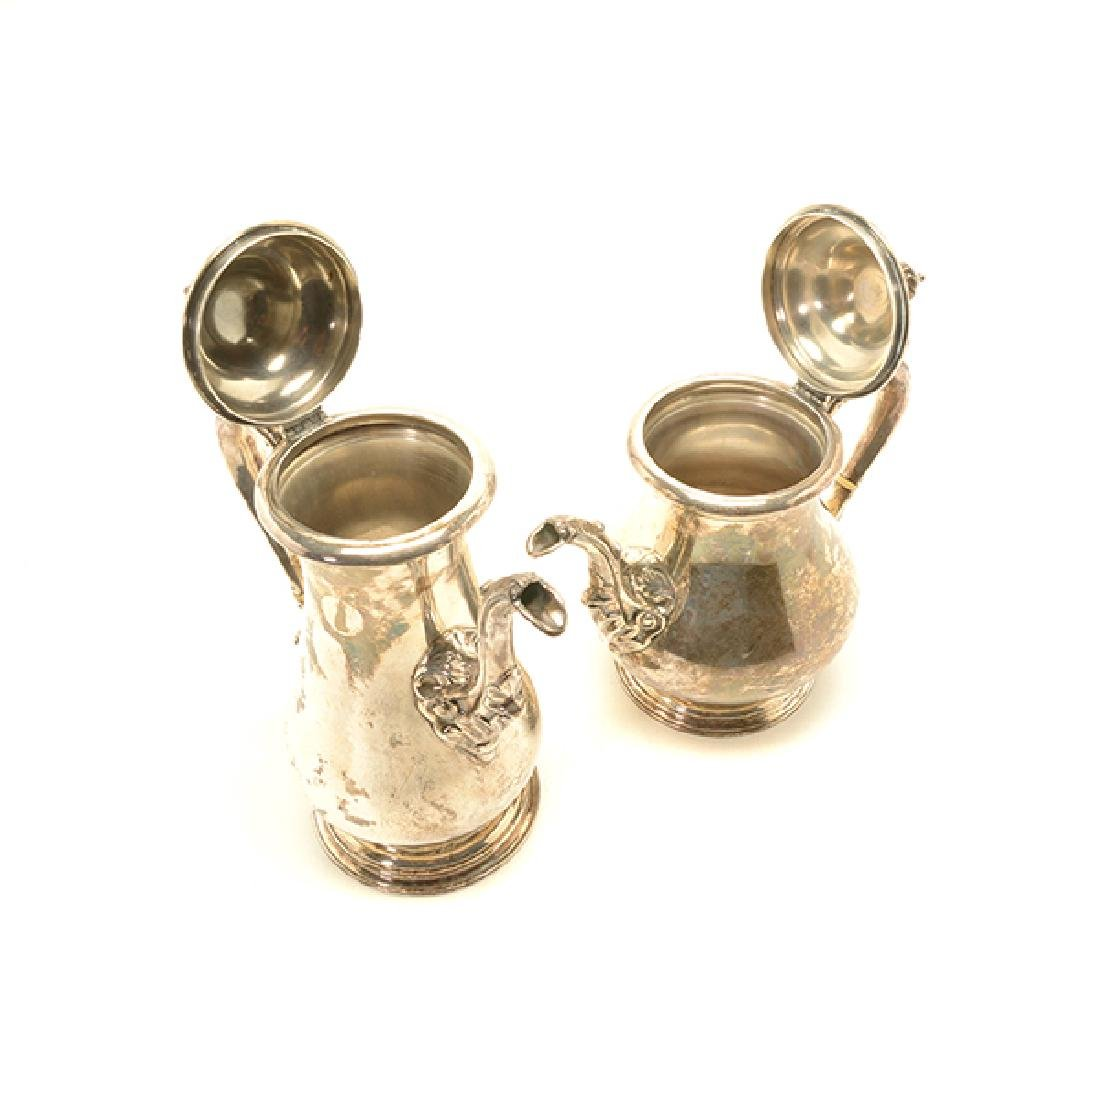 Shreve Sterling Five Piece Coffee and Tea Service - 4